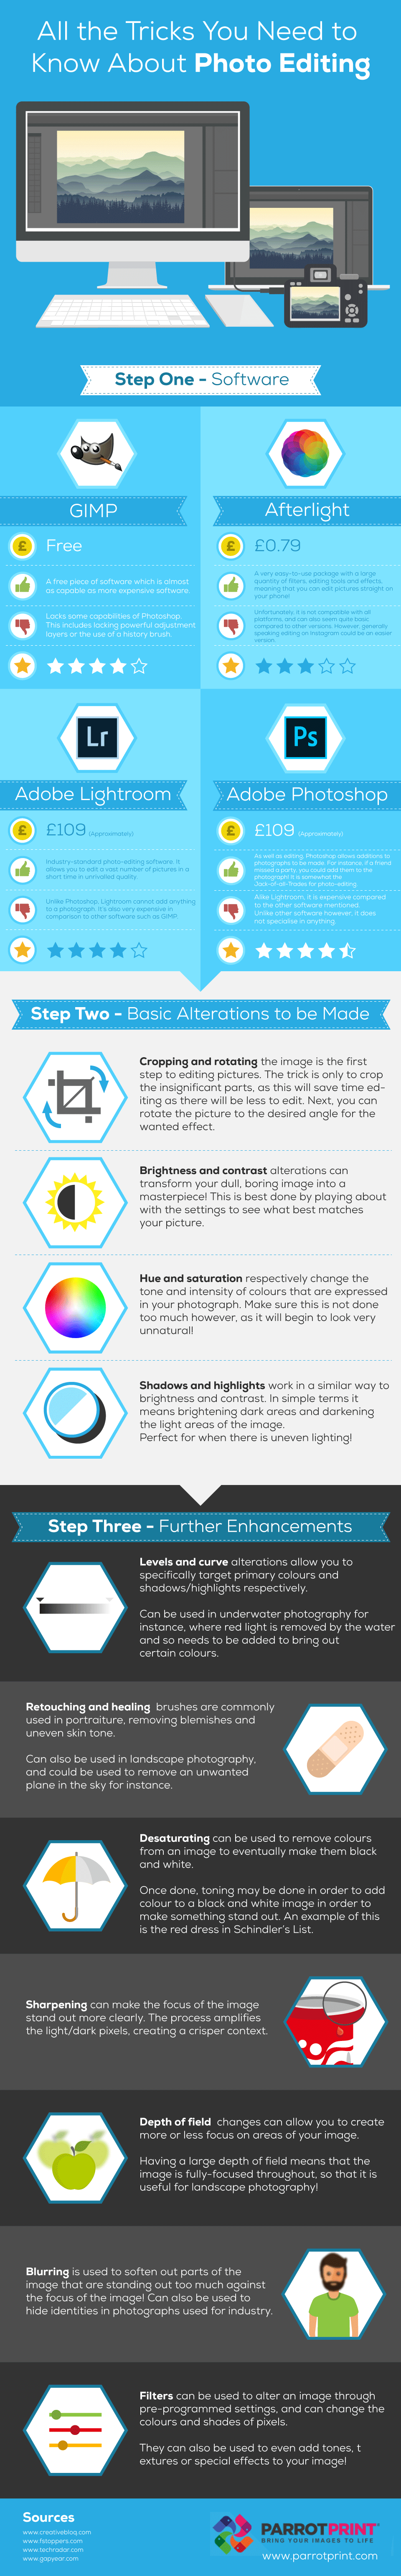 Photo editing tips and tricks infographic